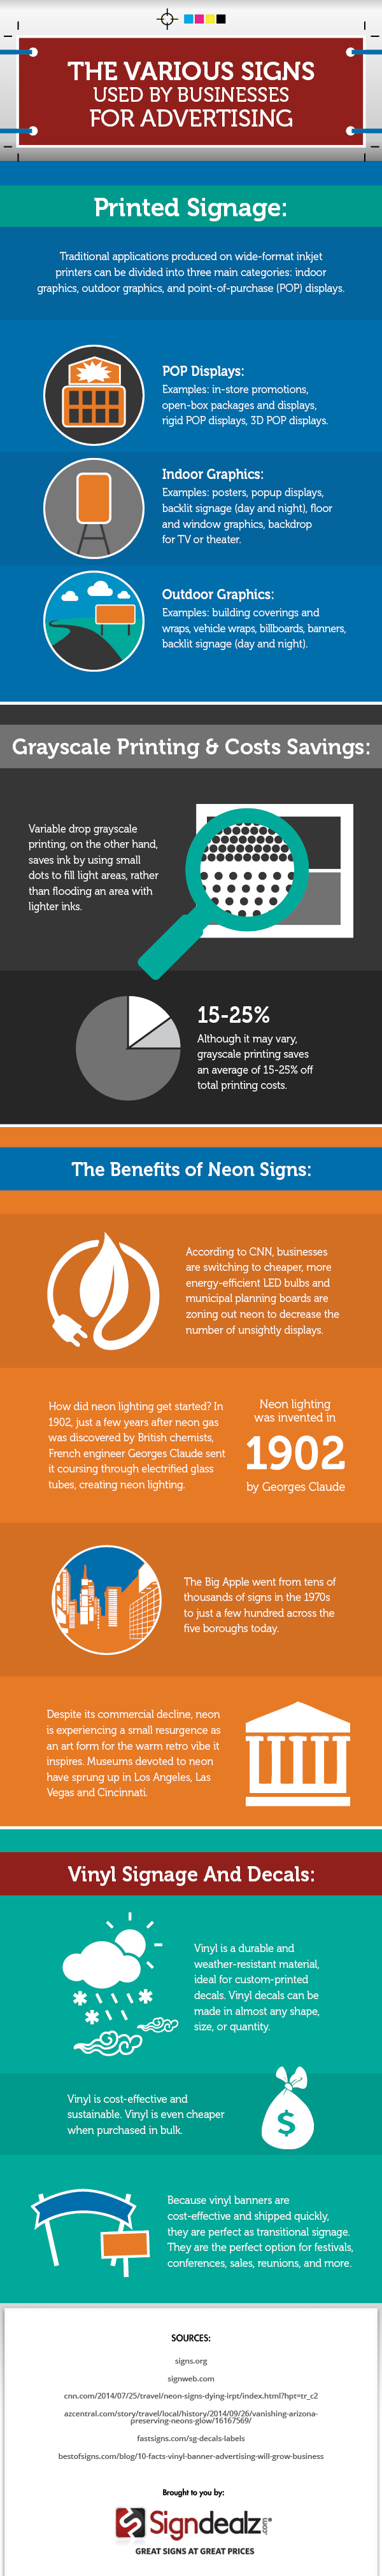 infographic business signs channel letters advertising